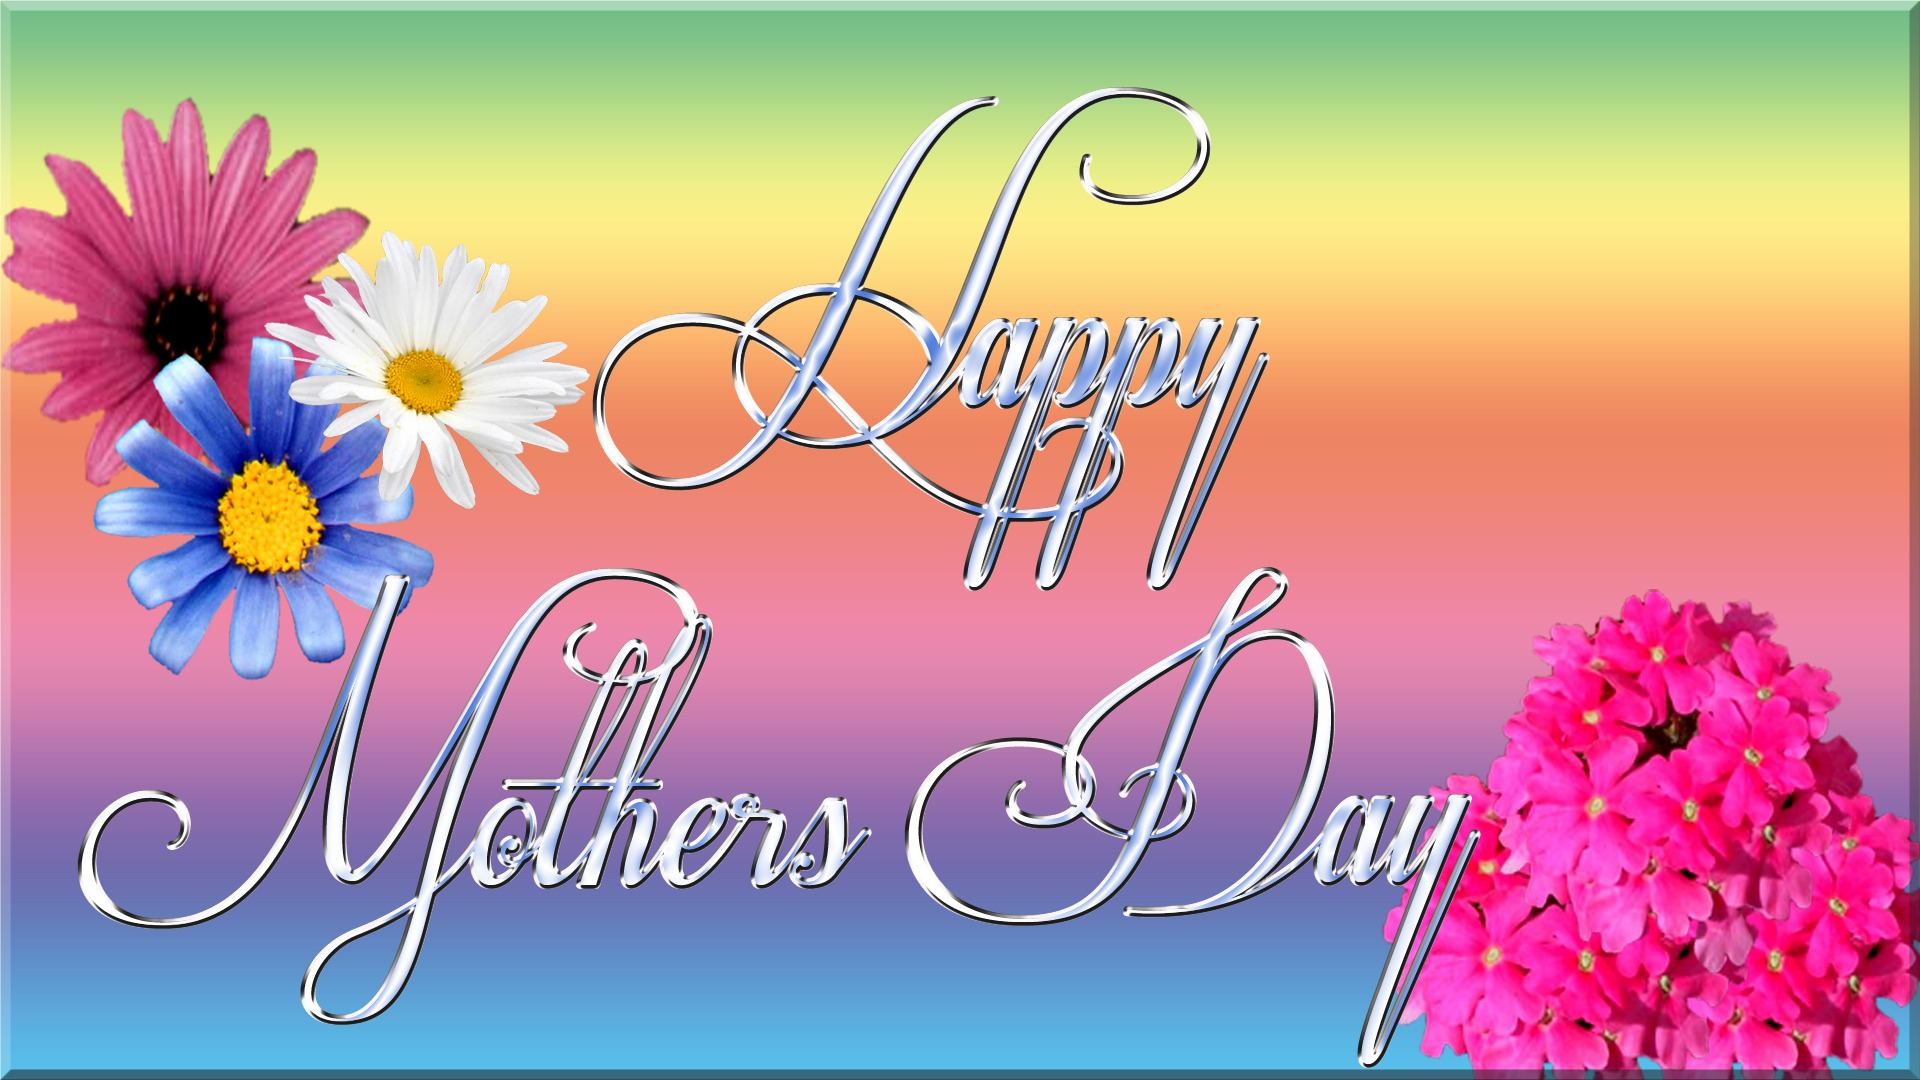 Mothers Day Images, Wallpapers, Pictures Photos